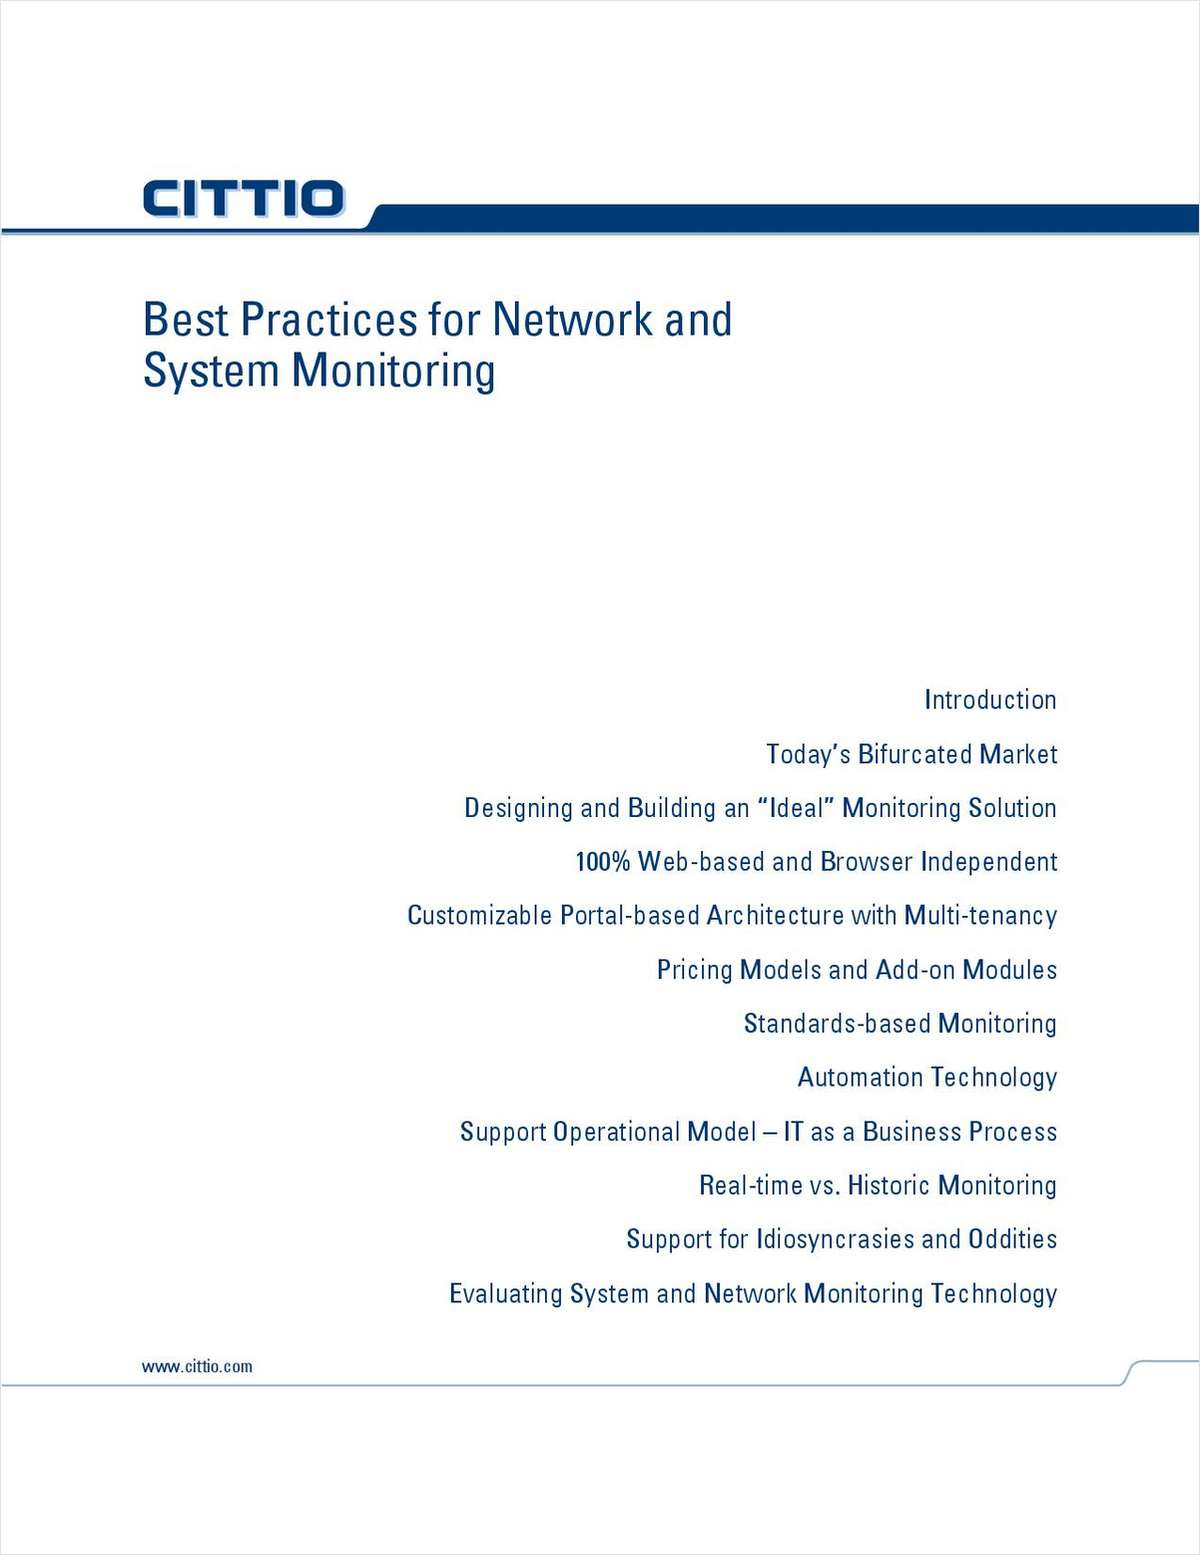 Best Practices for Network and System Monitoring